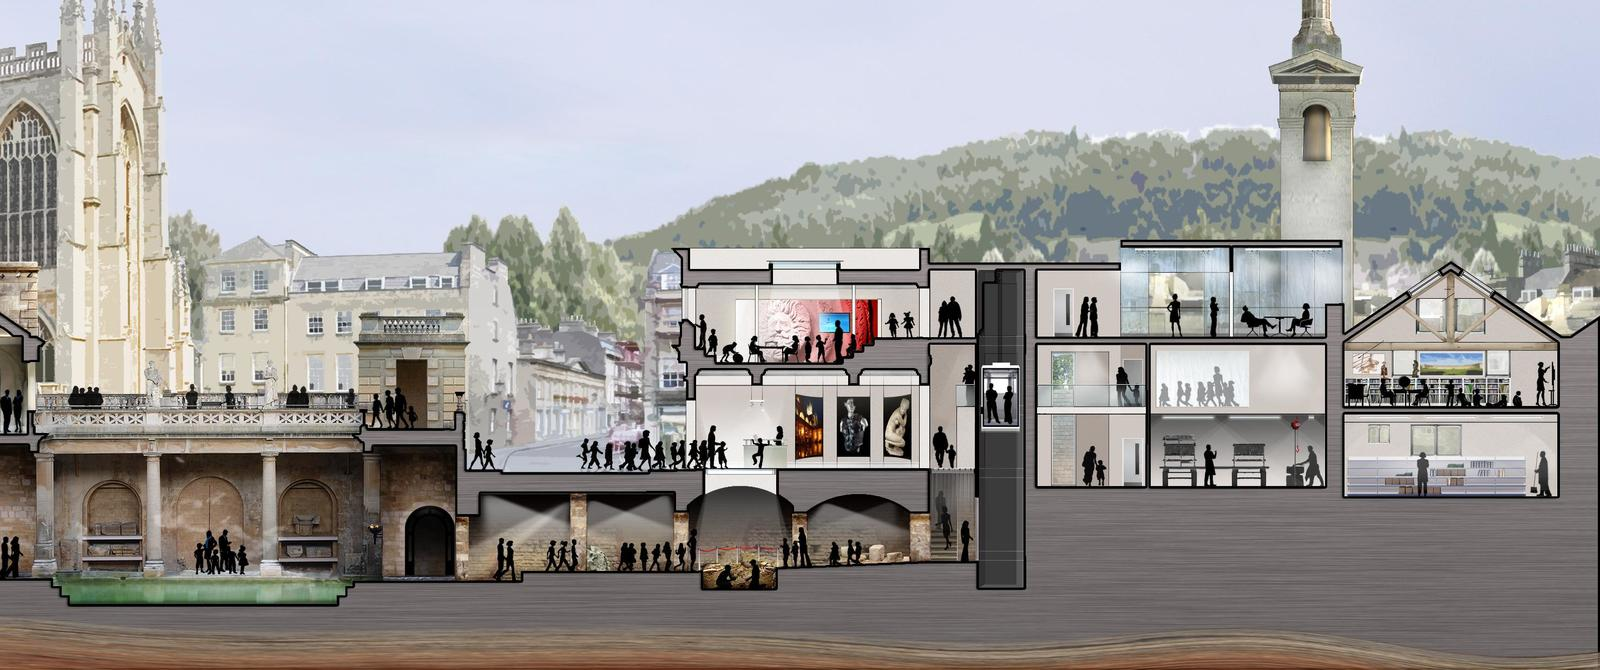 Image: Artist's impression of the new Archway Centre